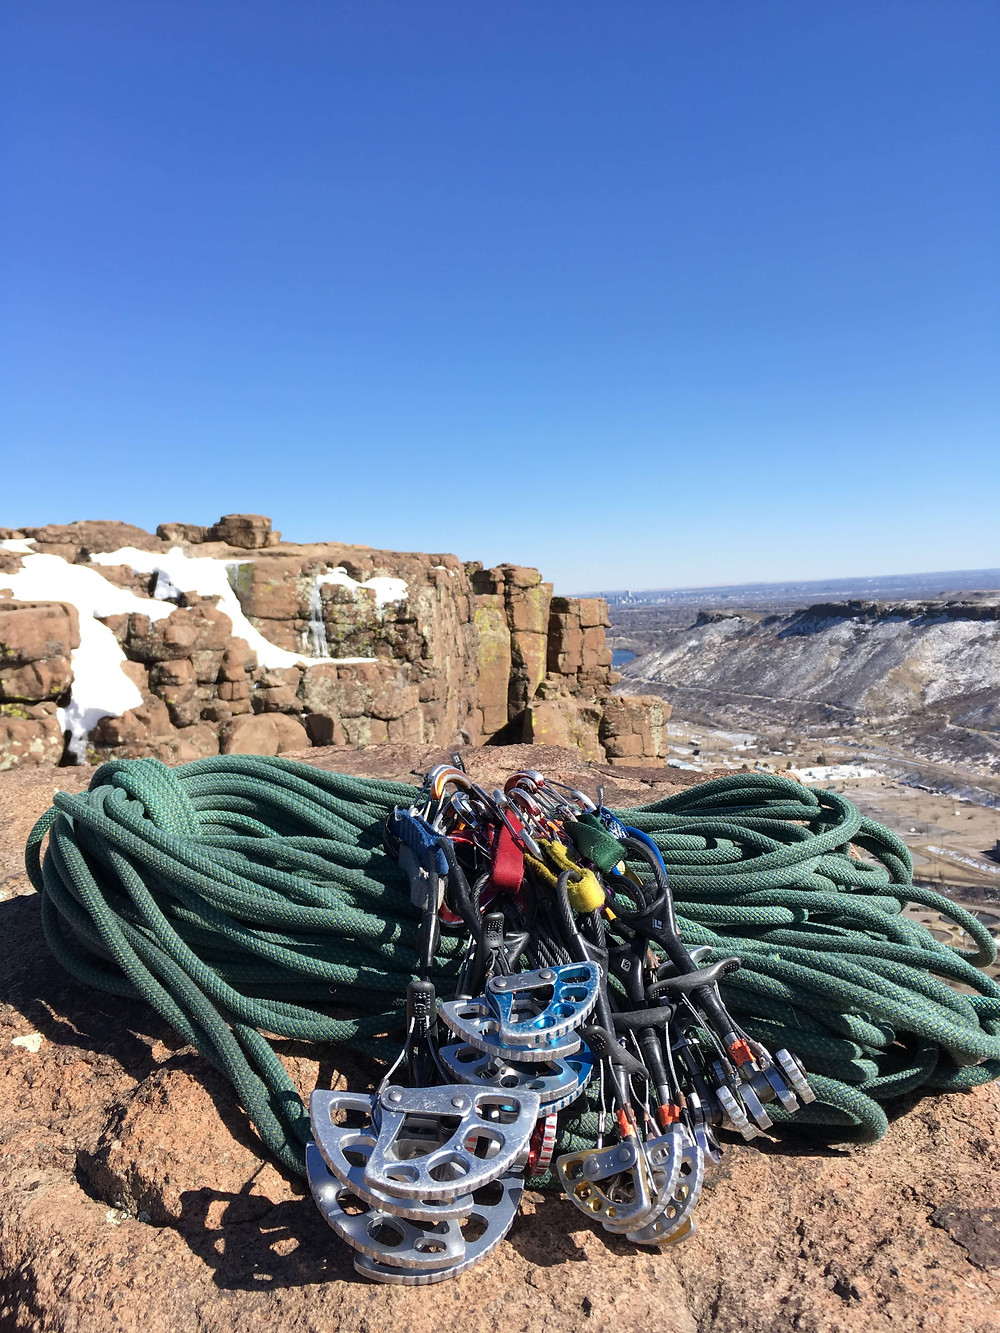 A trad rack for climbing at North Table Mountain